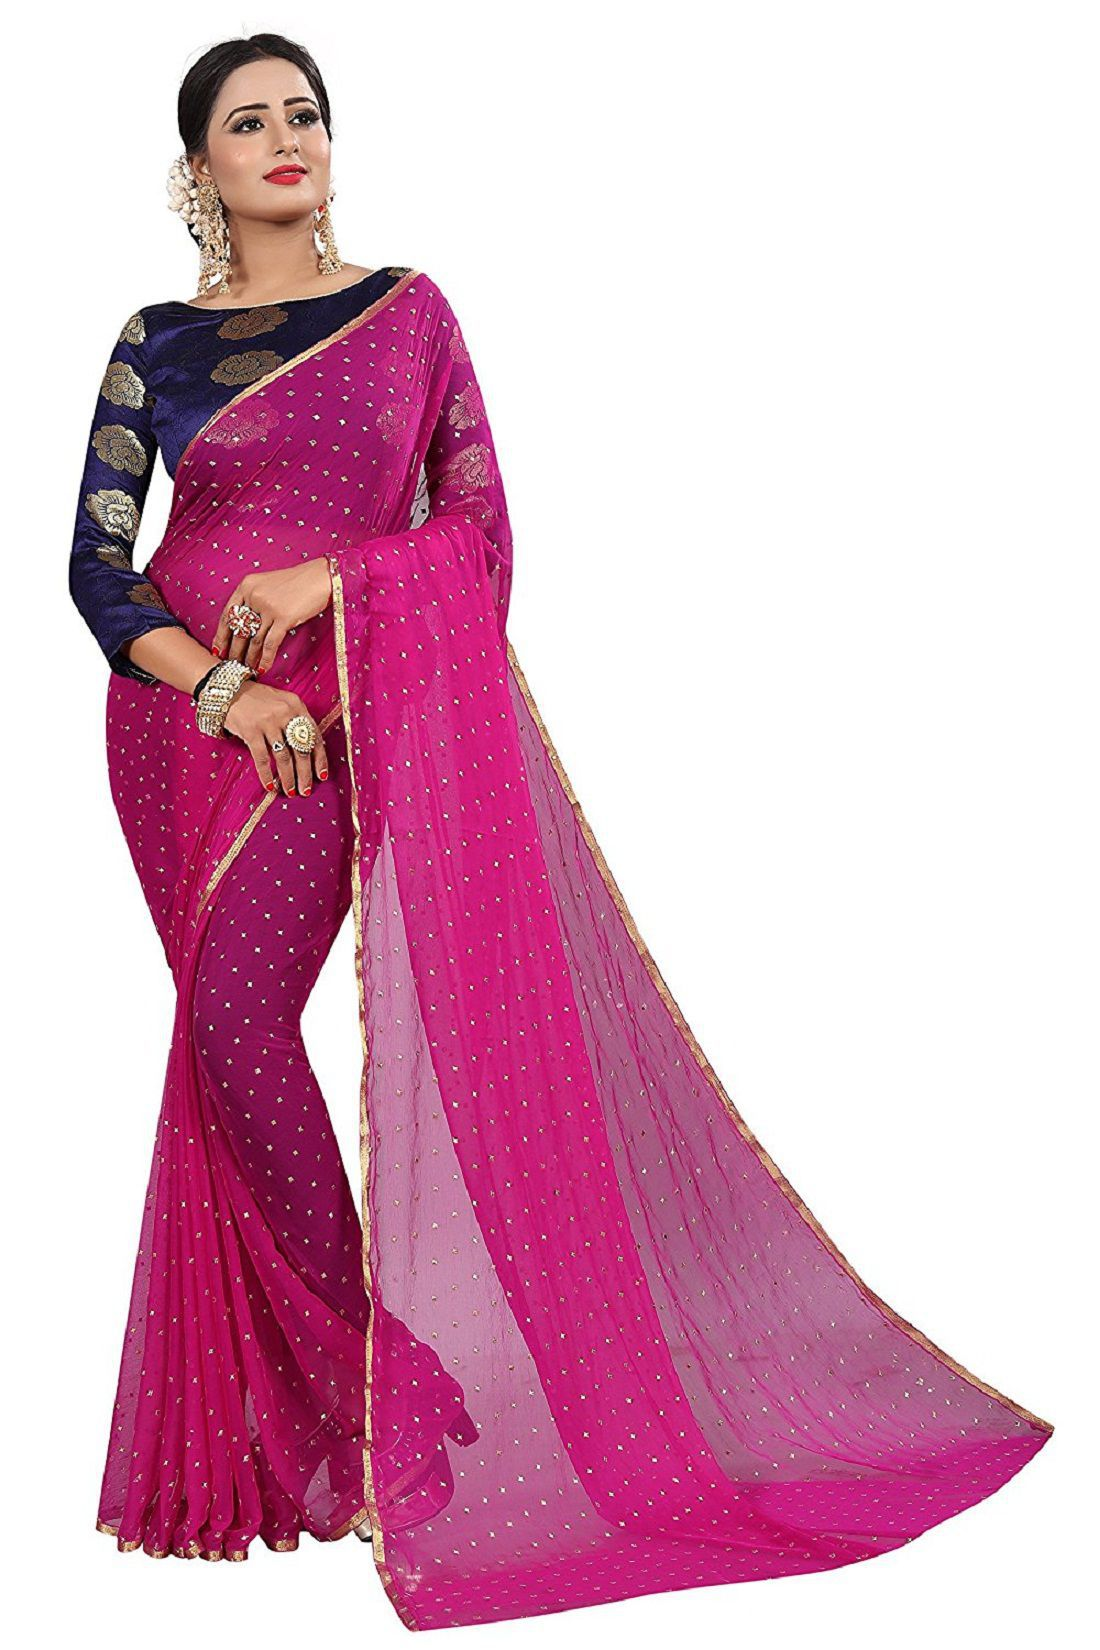 84b478d642 NISHA CREATION Pink and Purple Cotton Silk Saree - Buy NISHA CREATION Pink  and Purple Cotton Silk Saree Online at Low Price - Snapdeal.com